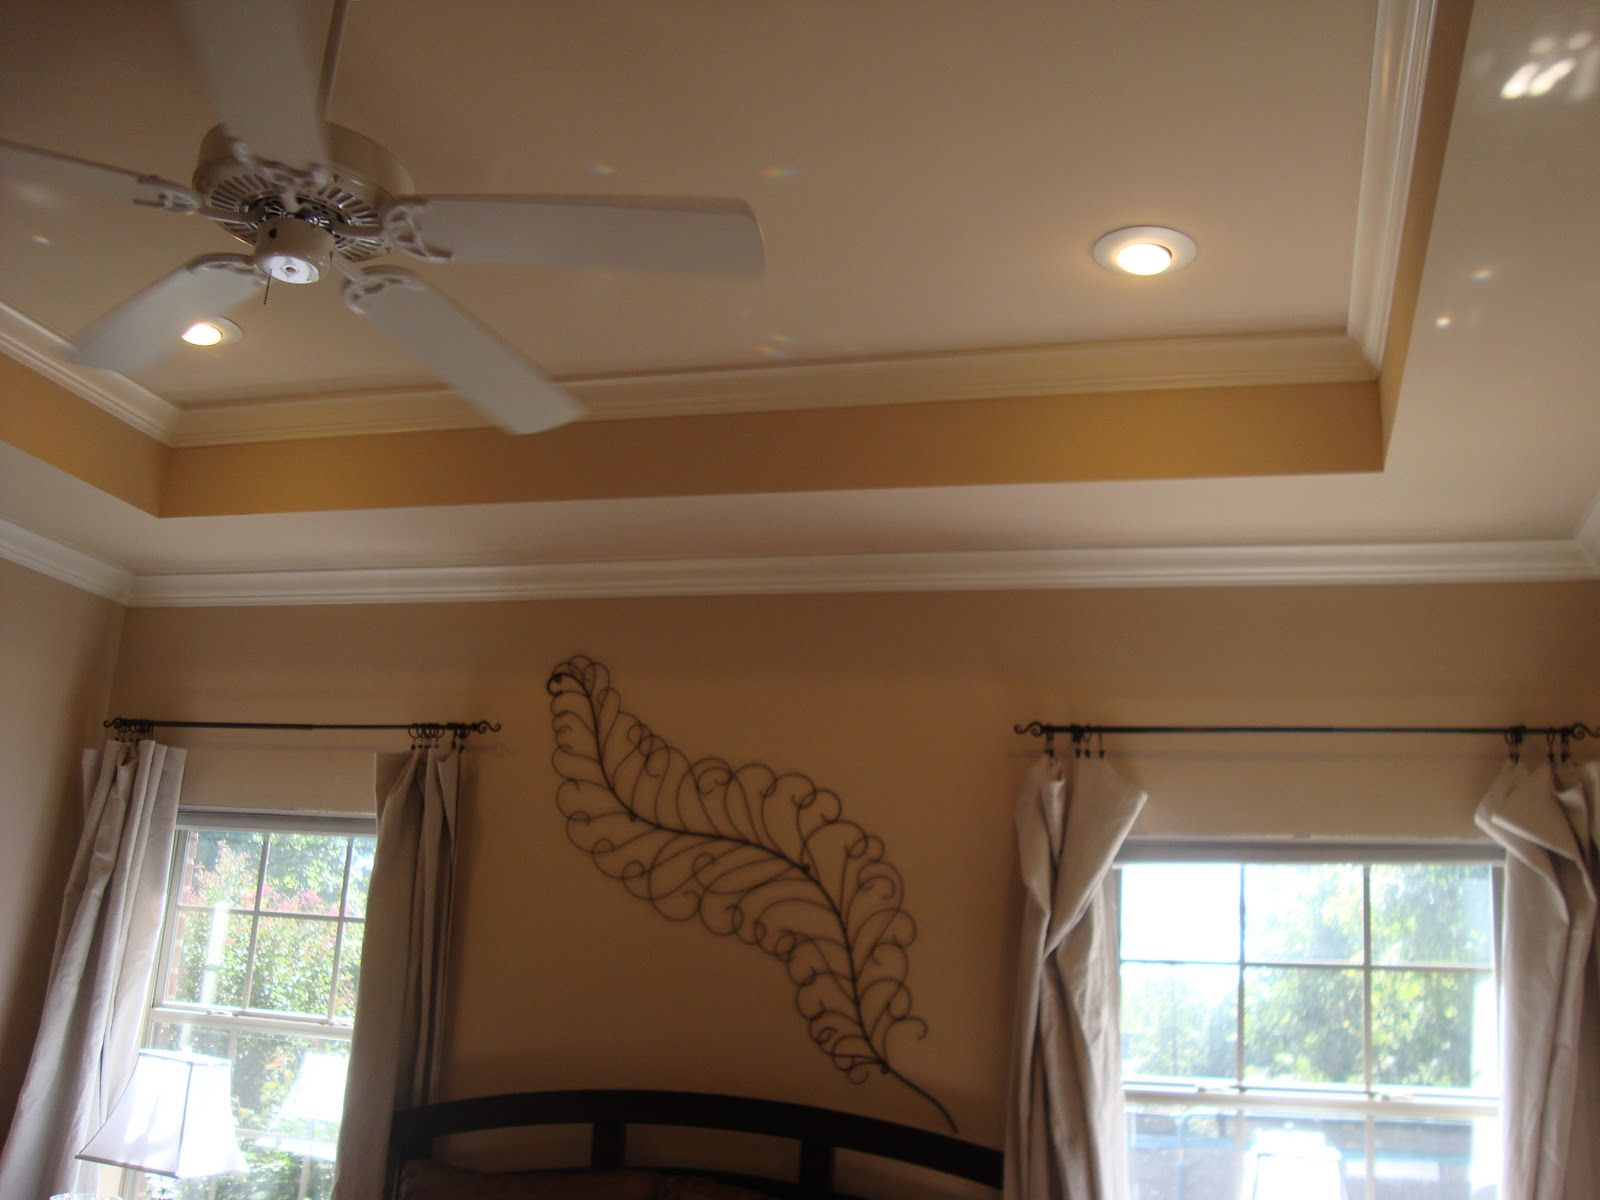 Ceiling Molding Design Ideas ceiling treatments and design ideas that add character to any room from pretty molding to decorative beams you can give common ceilings a boost with these Bedroom Tray Ceiling Moldingpainting Ideas